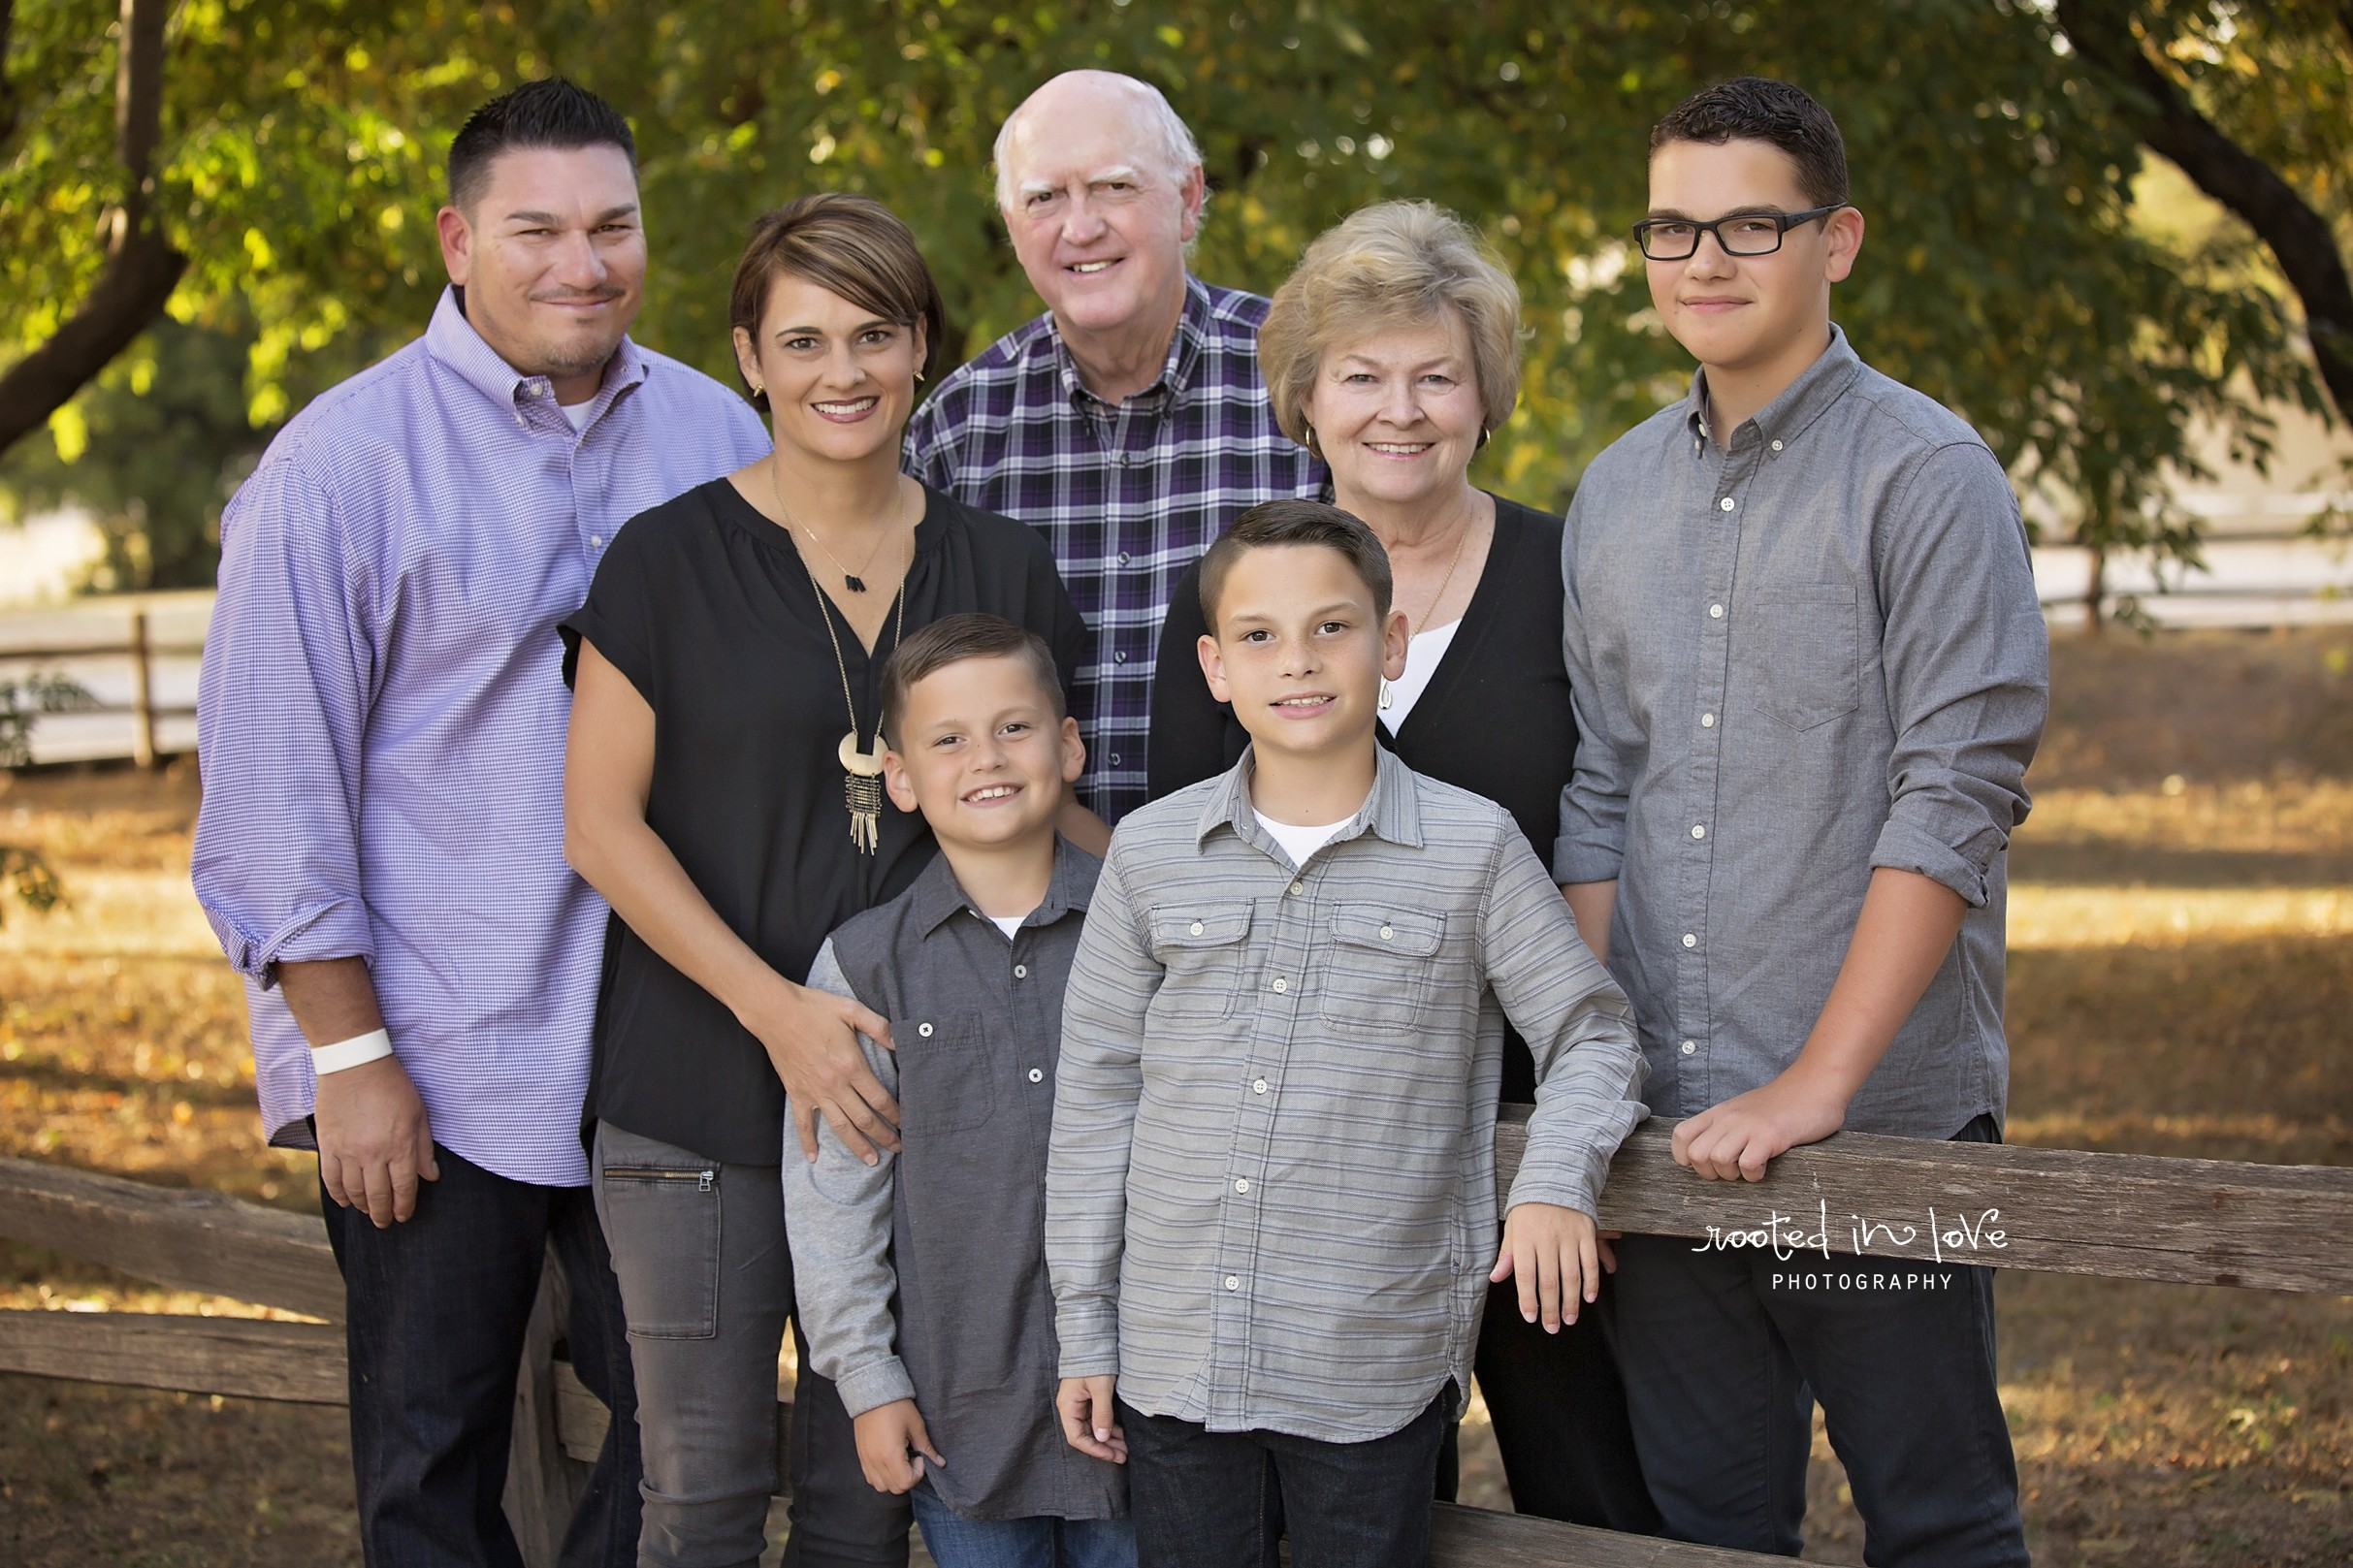 Smiley family | Fort Worth family photographer